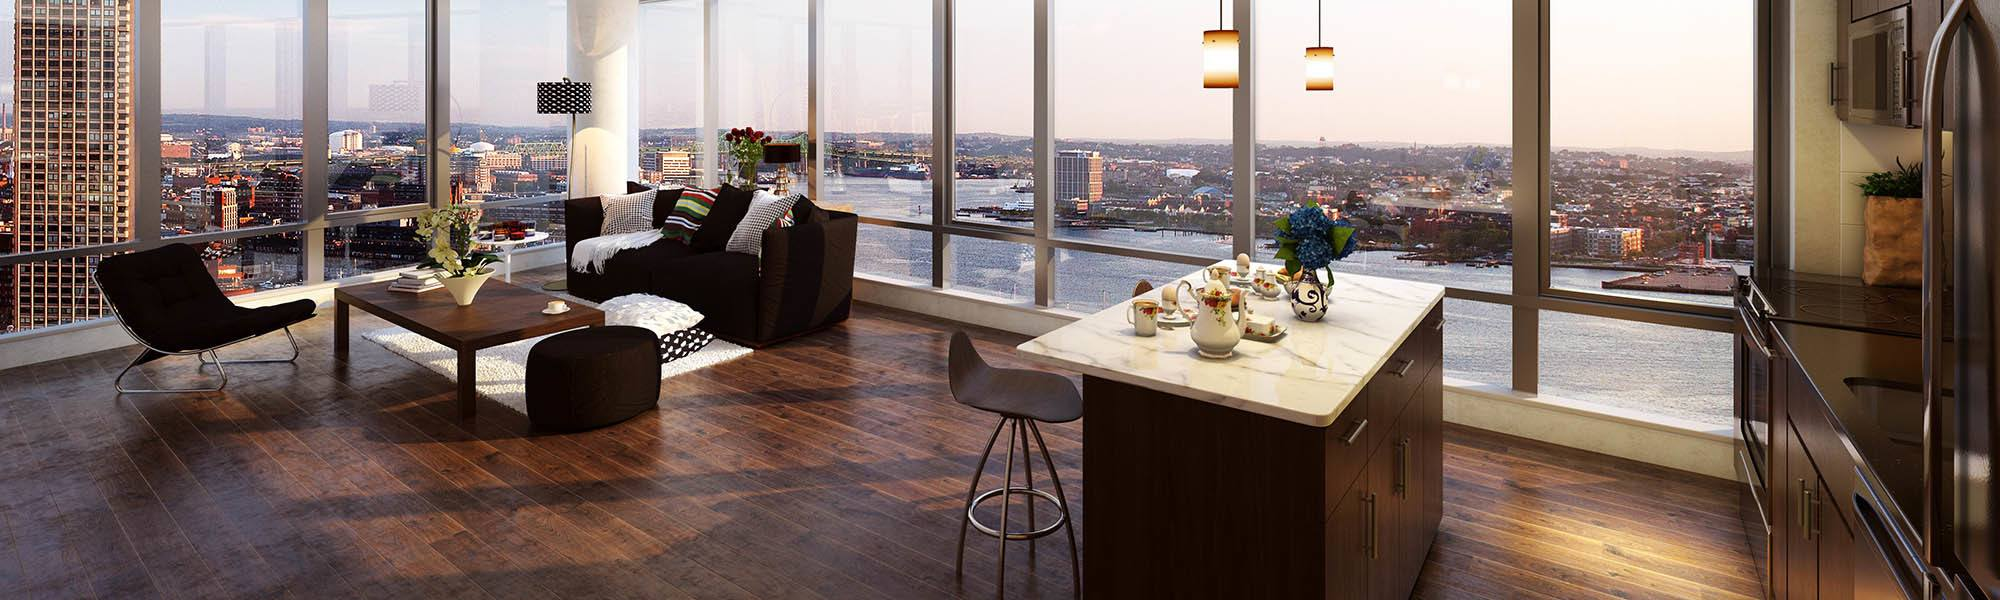 boston apartment features | the benjamin seaport residences